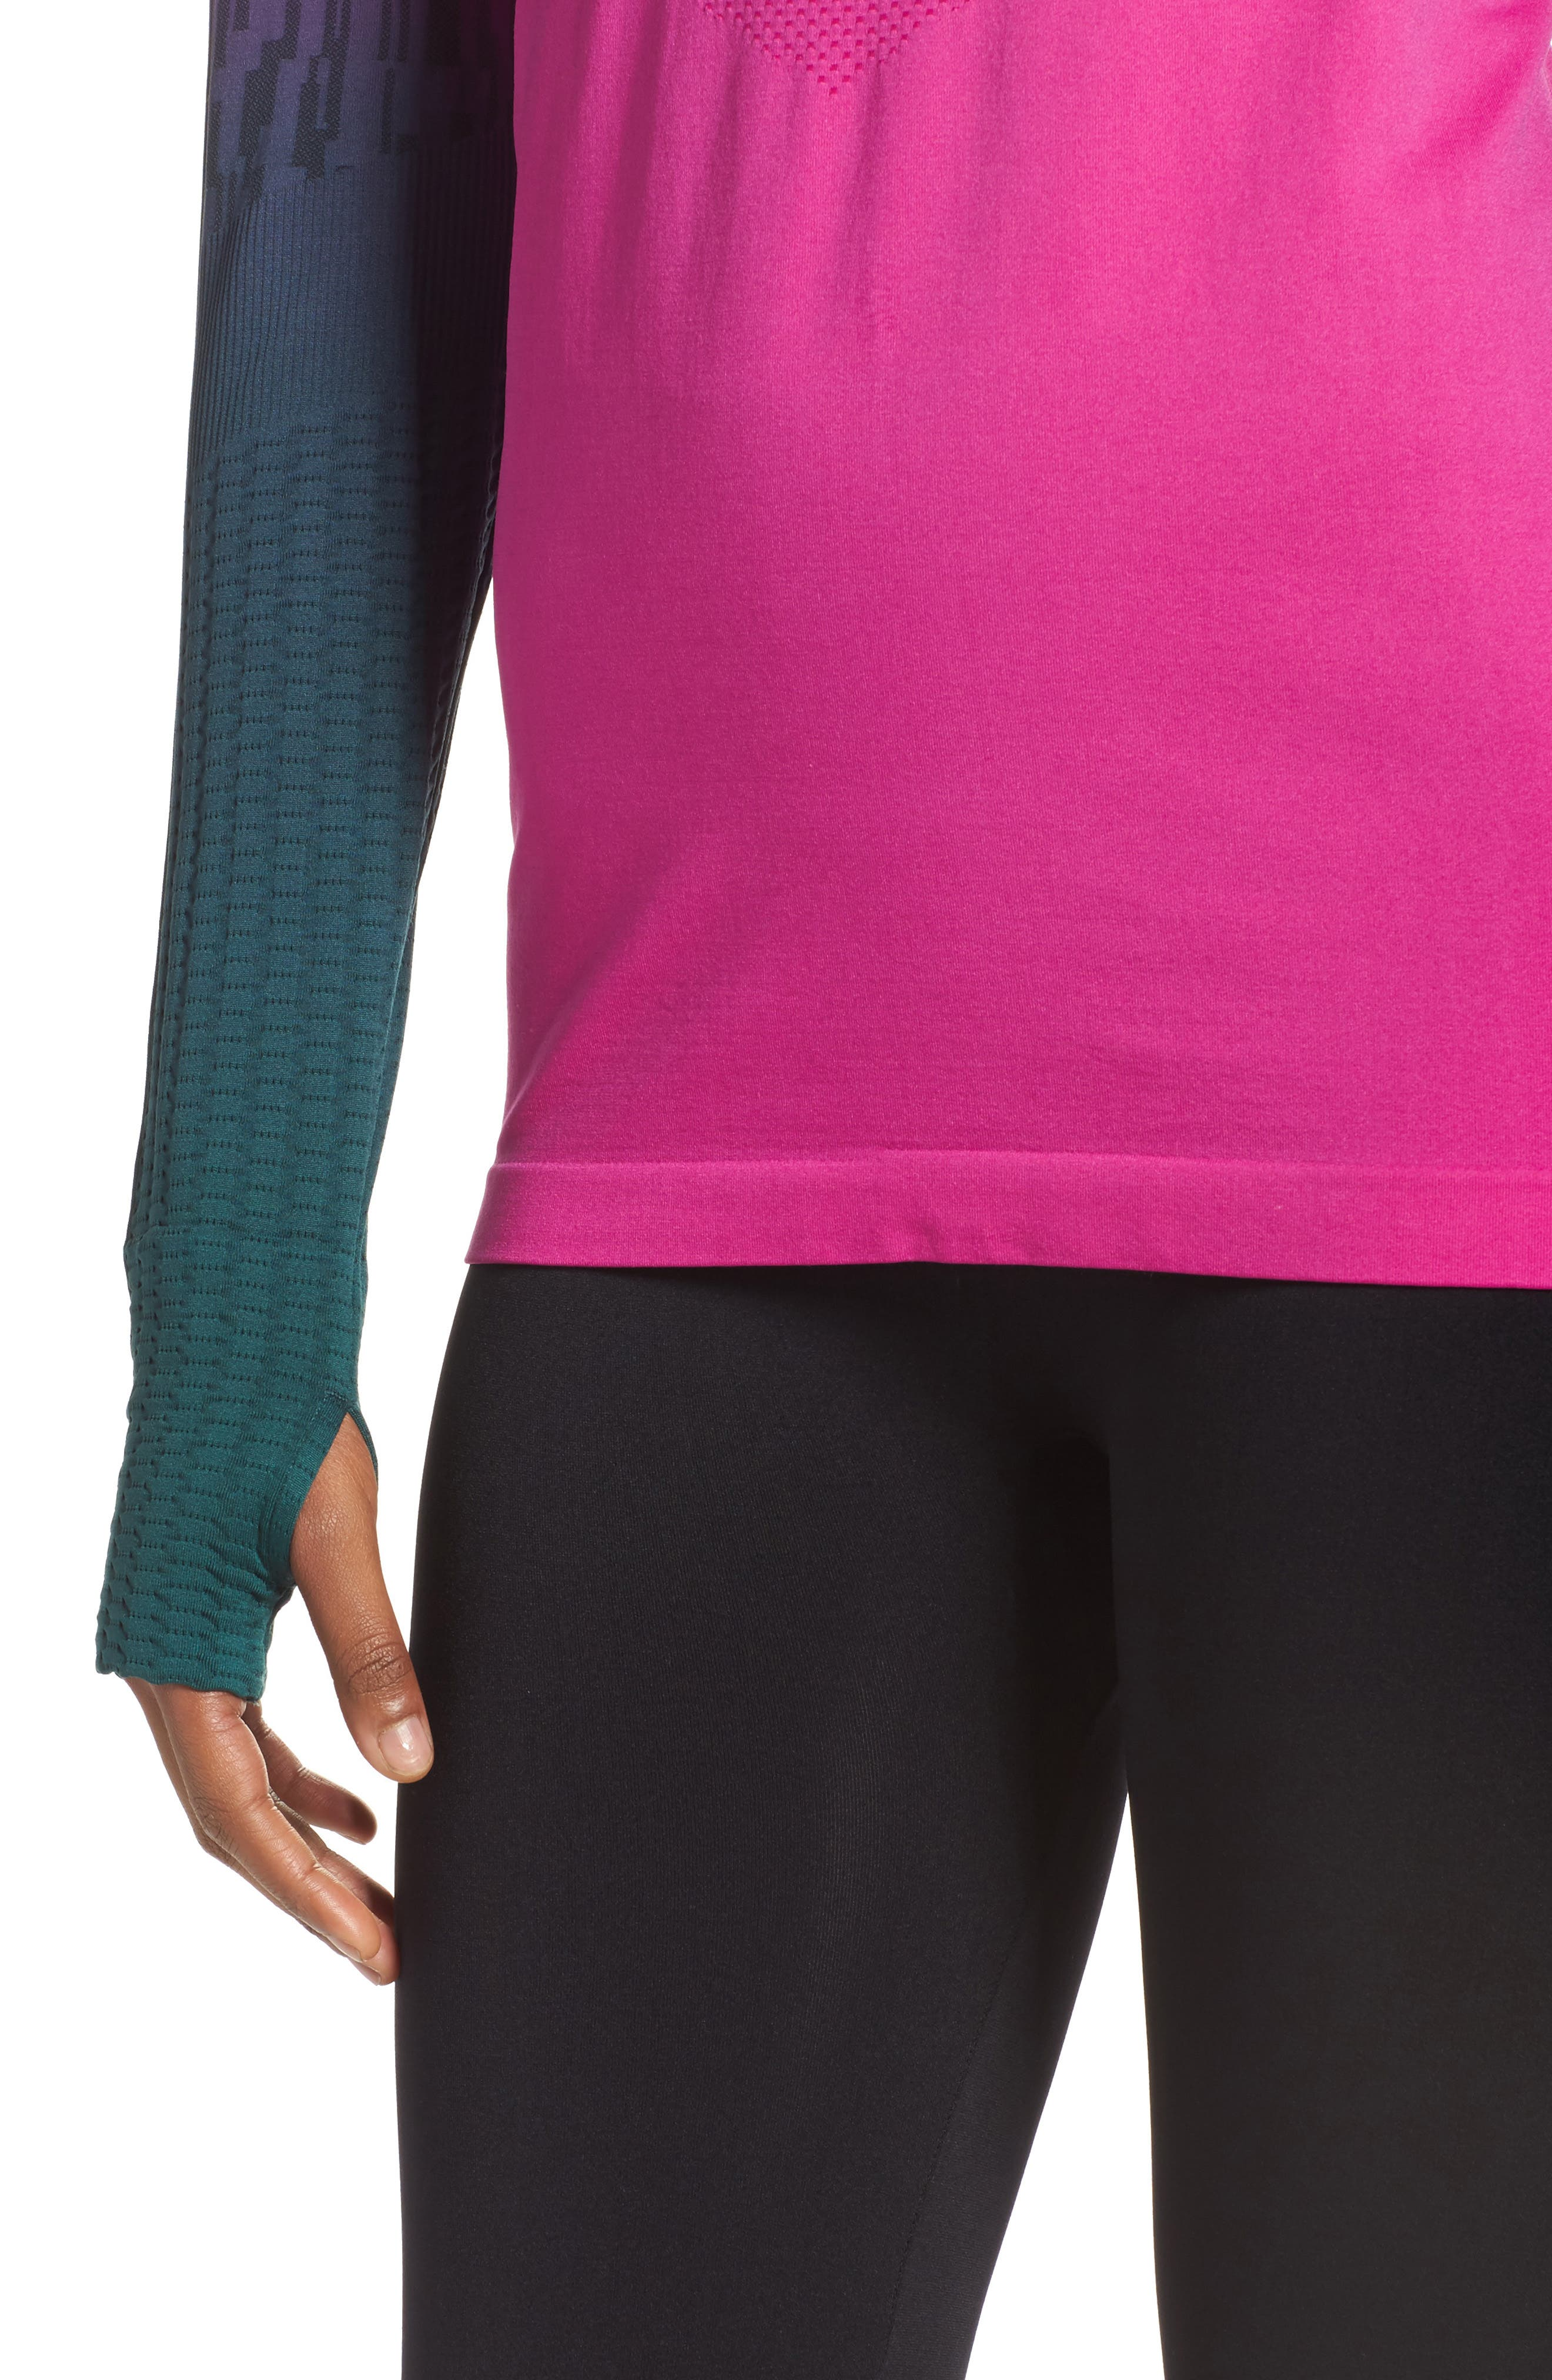 Odyssey Running Tee,                             Alternate thumbnail 4, color,                             Pink/ Nocturne Green